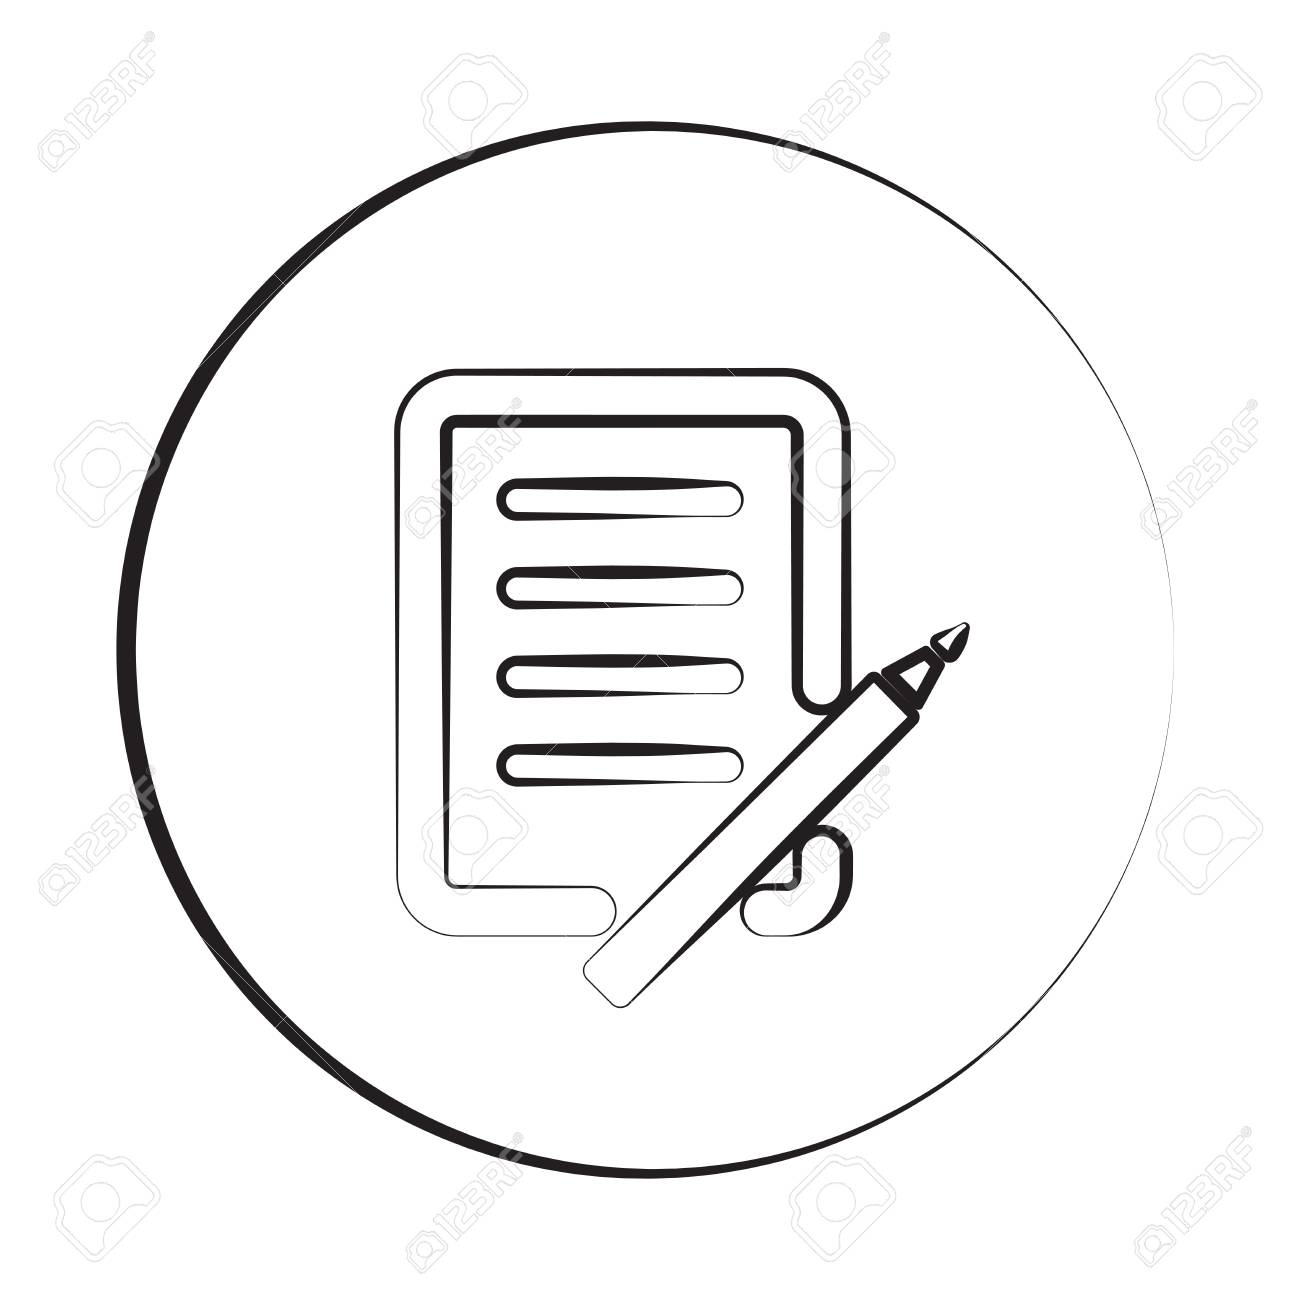 black ink style pen and paper icon with circle royalty free cliparts